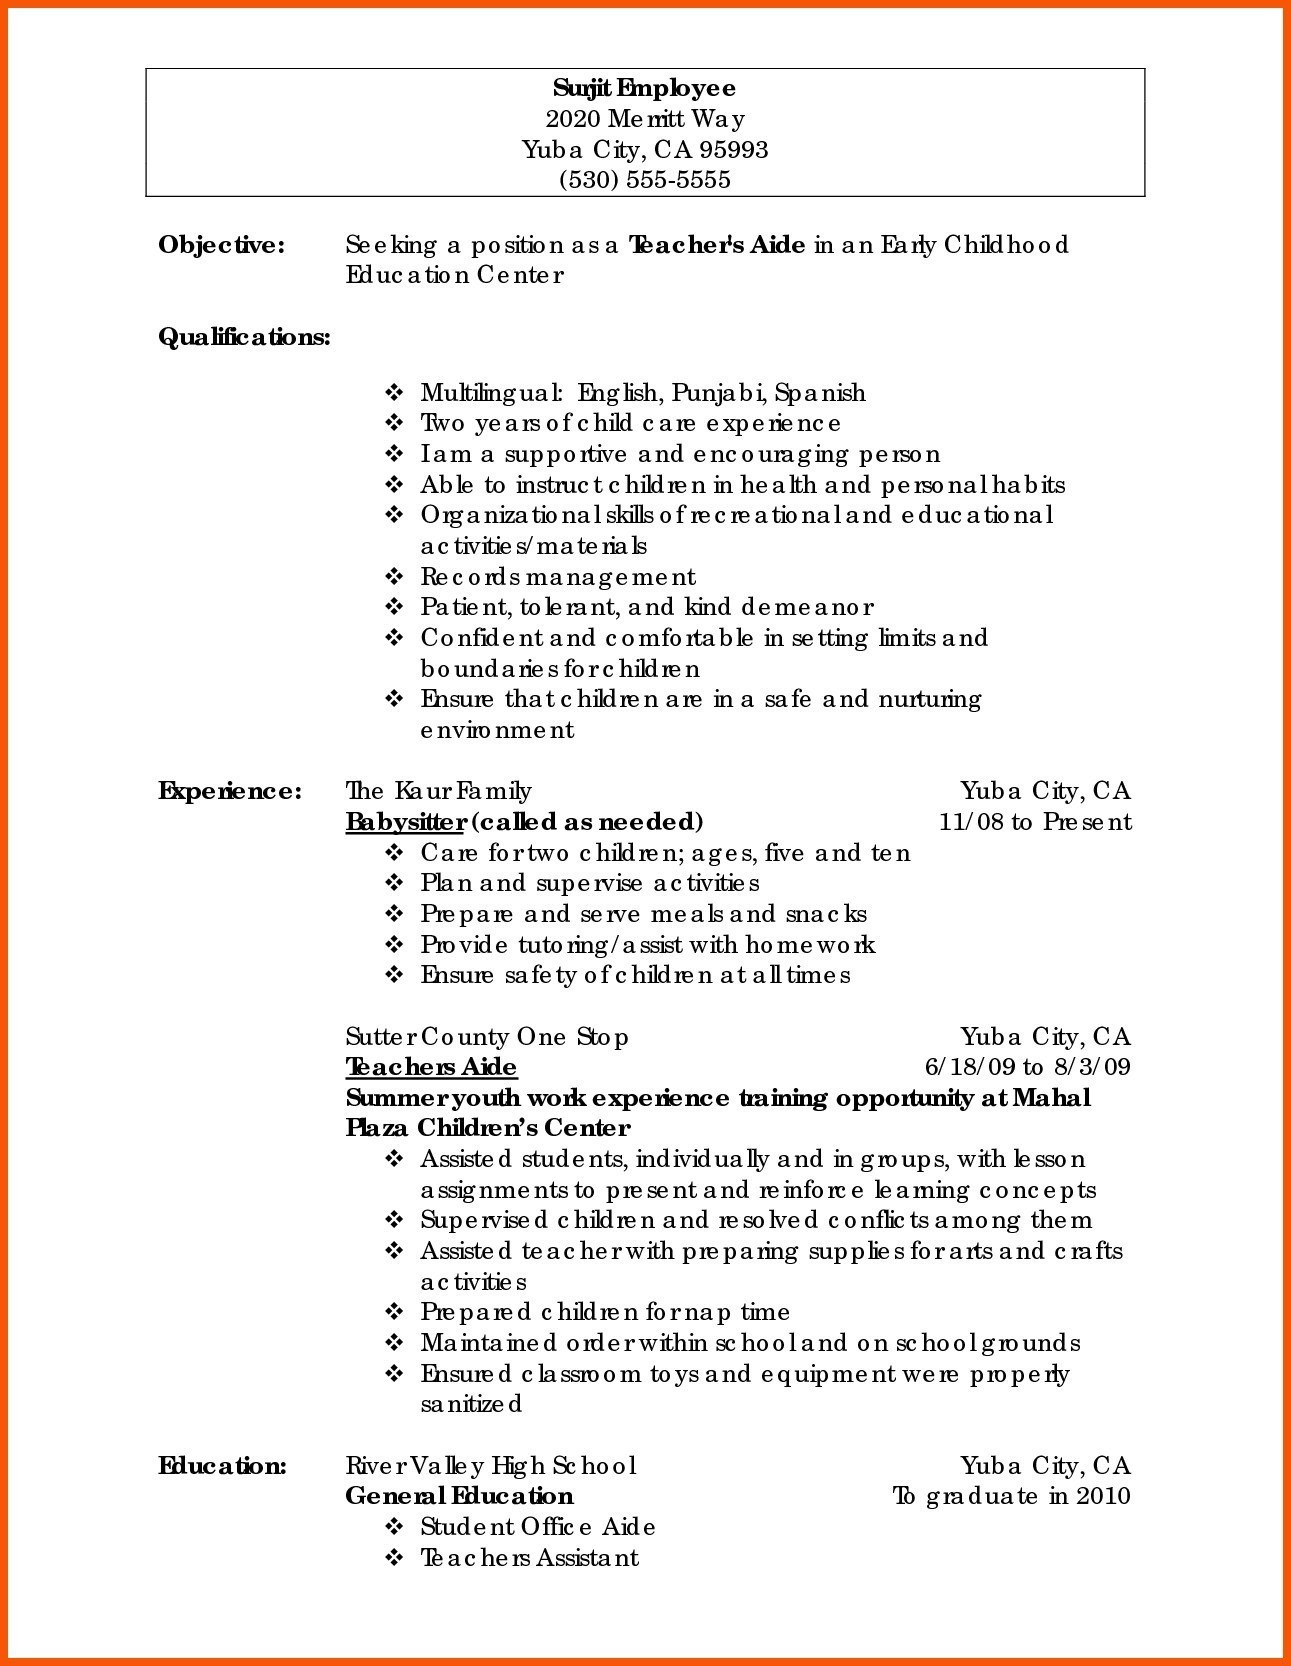 personal care assistant resume example-Care Assistant Responsibilities Valid Personal Care Assistant Resume Elegant Home Health Aide Care Plan 3-i